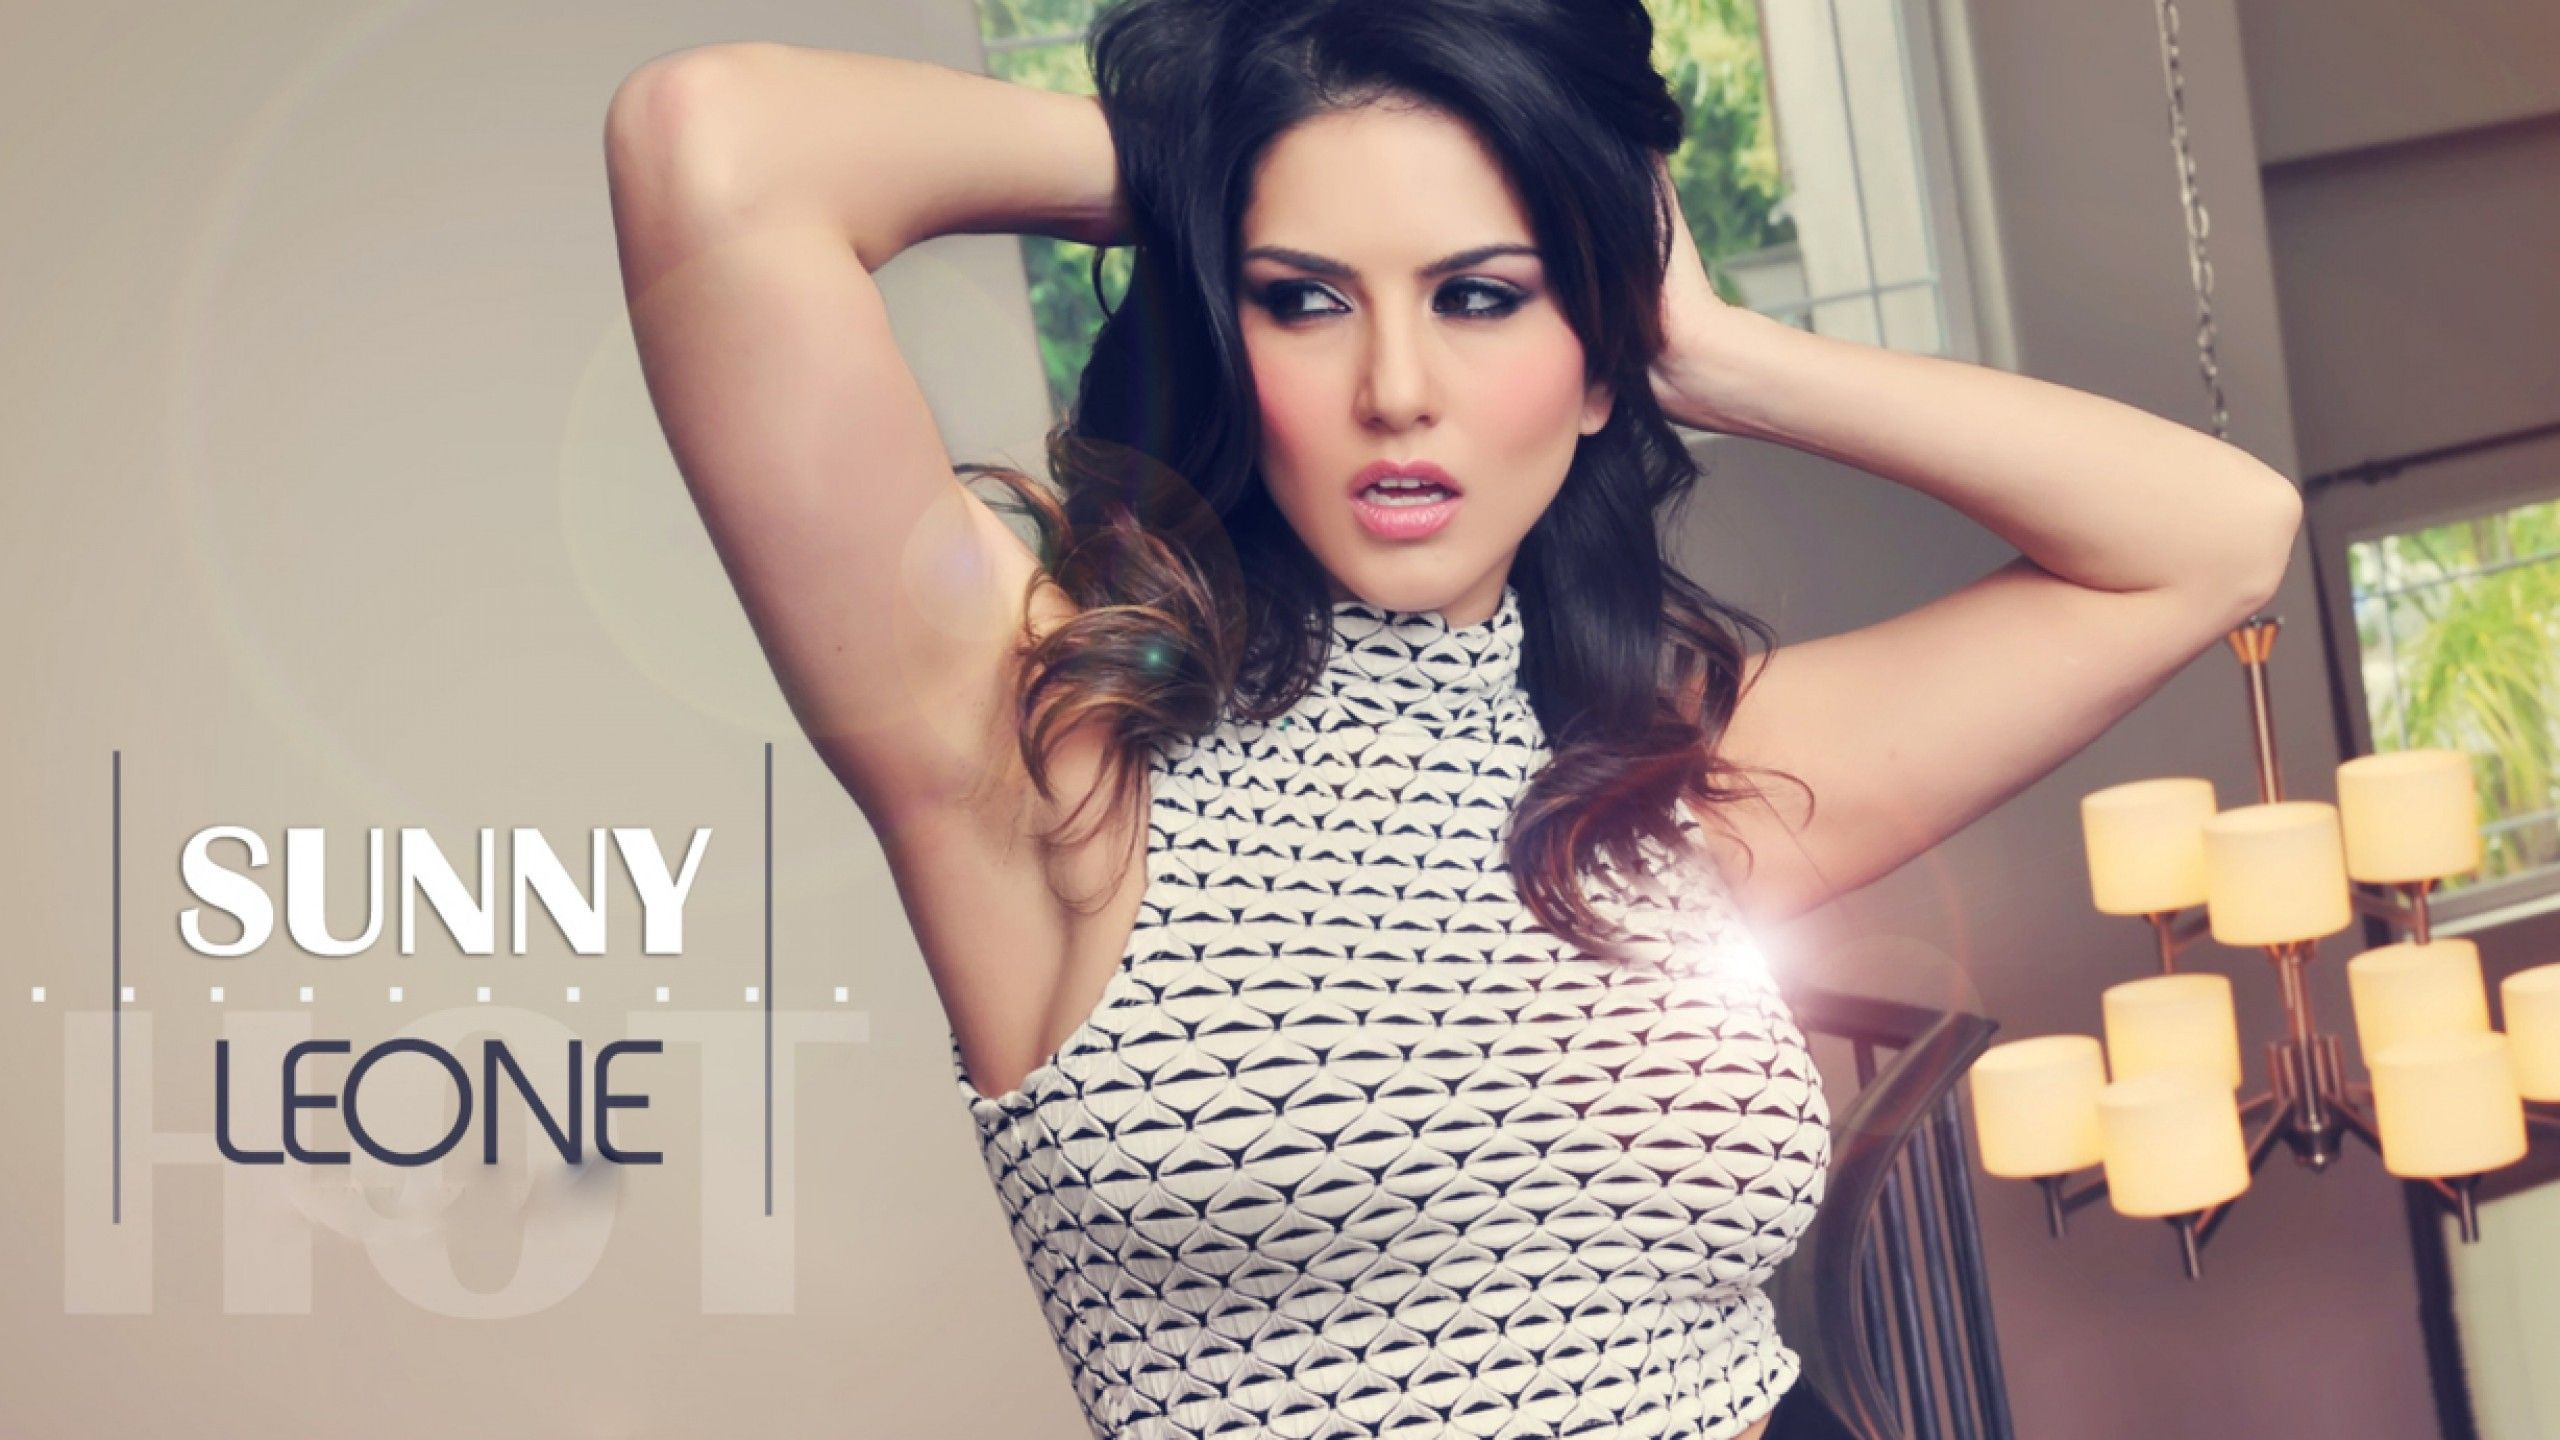 sunny leone hd images : get free top quality sunny leone hd images